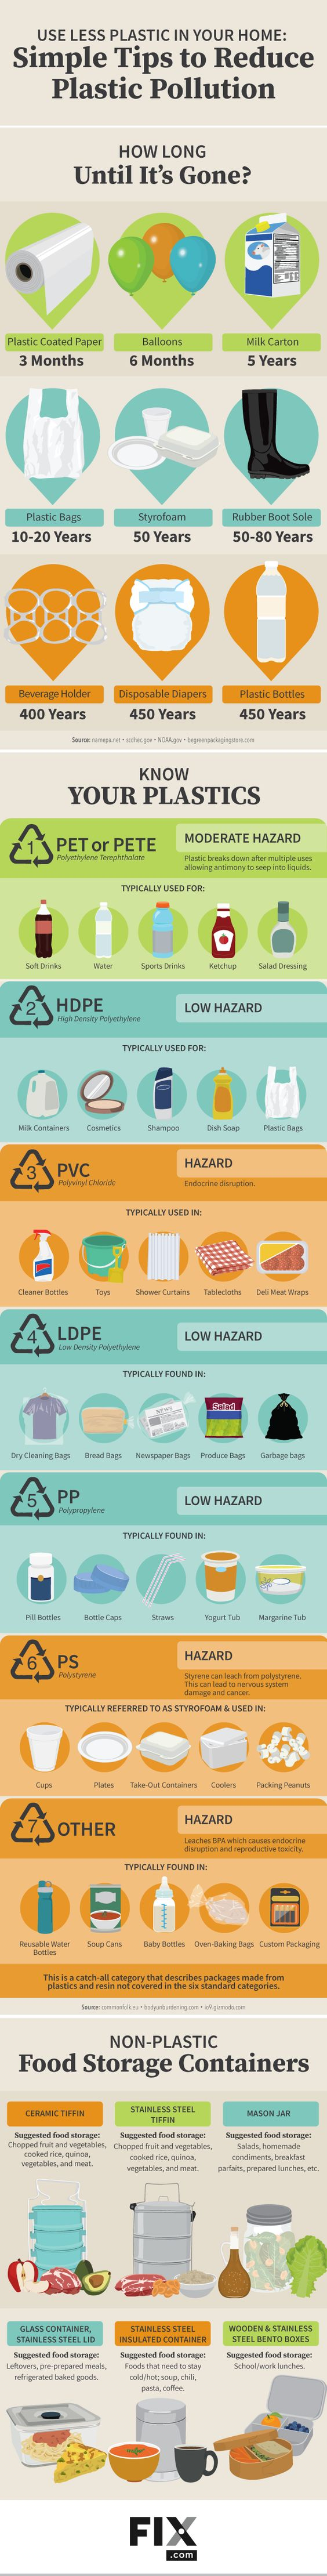 What do cigarettes and plastic have in common?